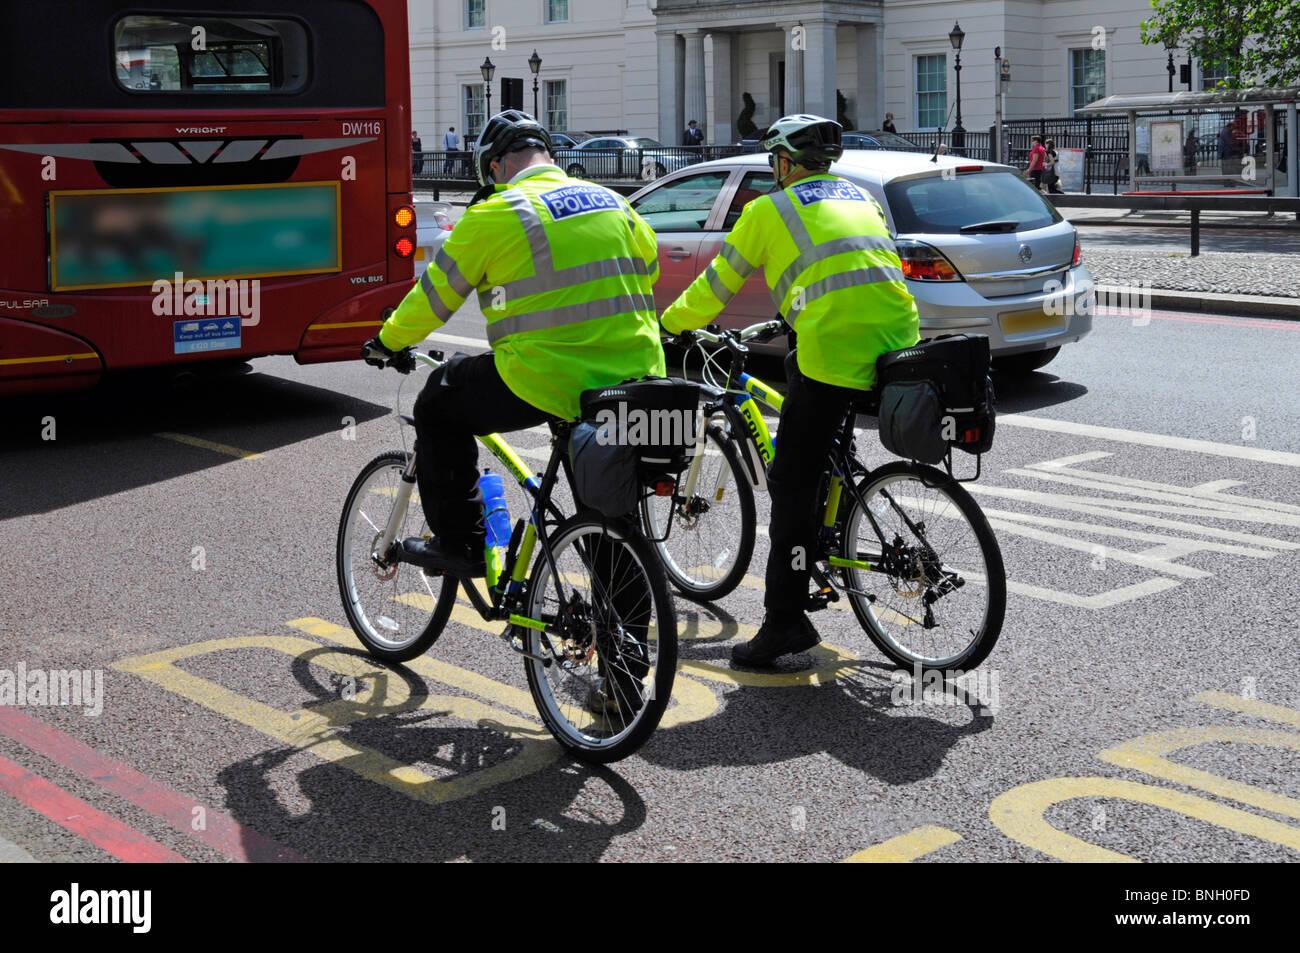 Metropolitan Police officers on bikes - Stock Image